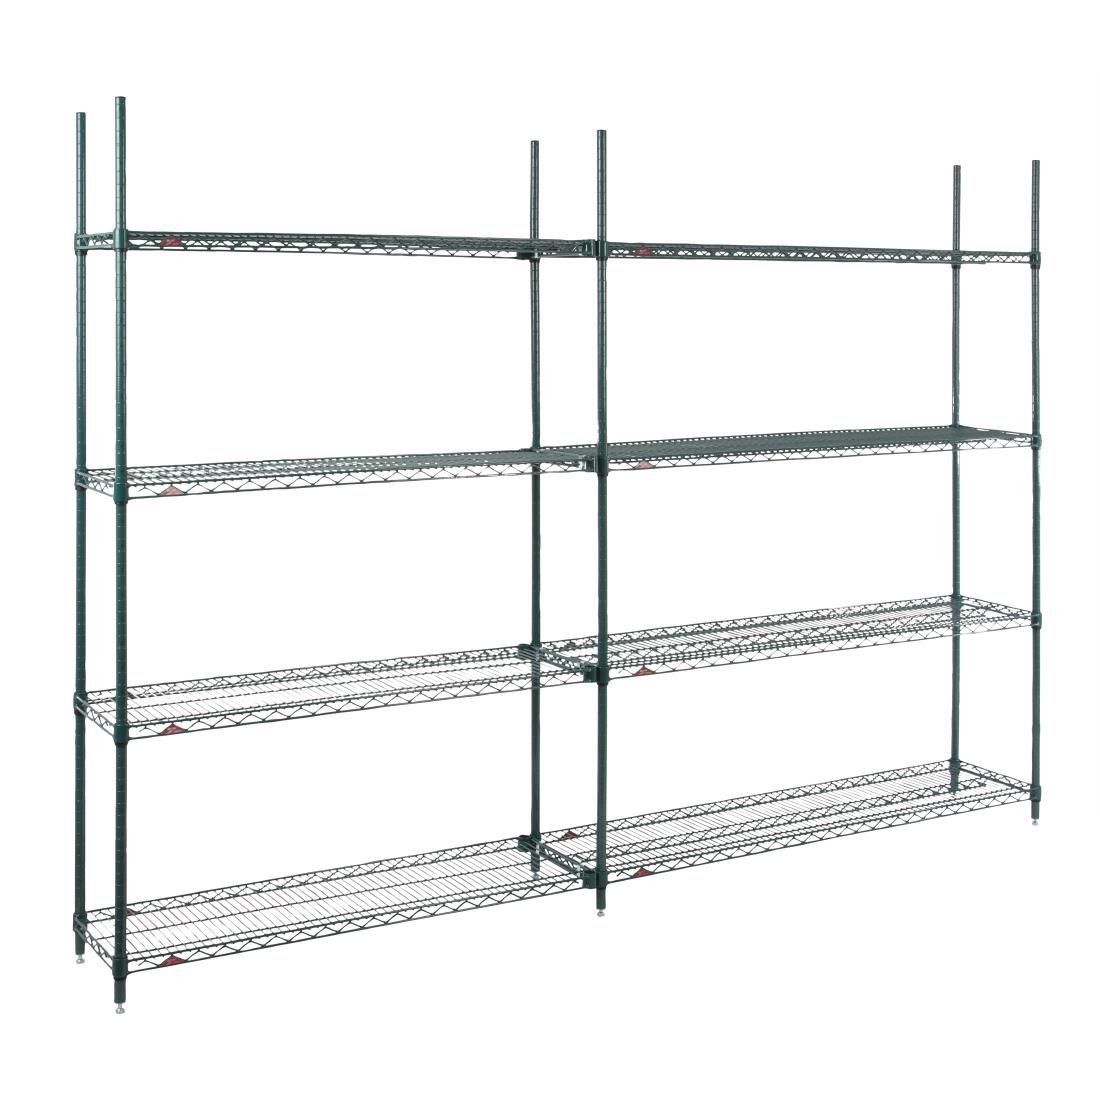 Details About Metro Super Erecta Add-on Shelving Kit 4 Shelves  1880x760x460mm [ds636]